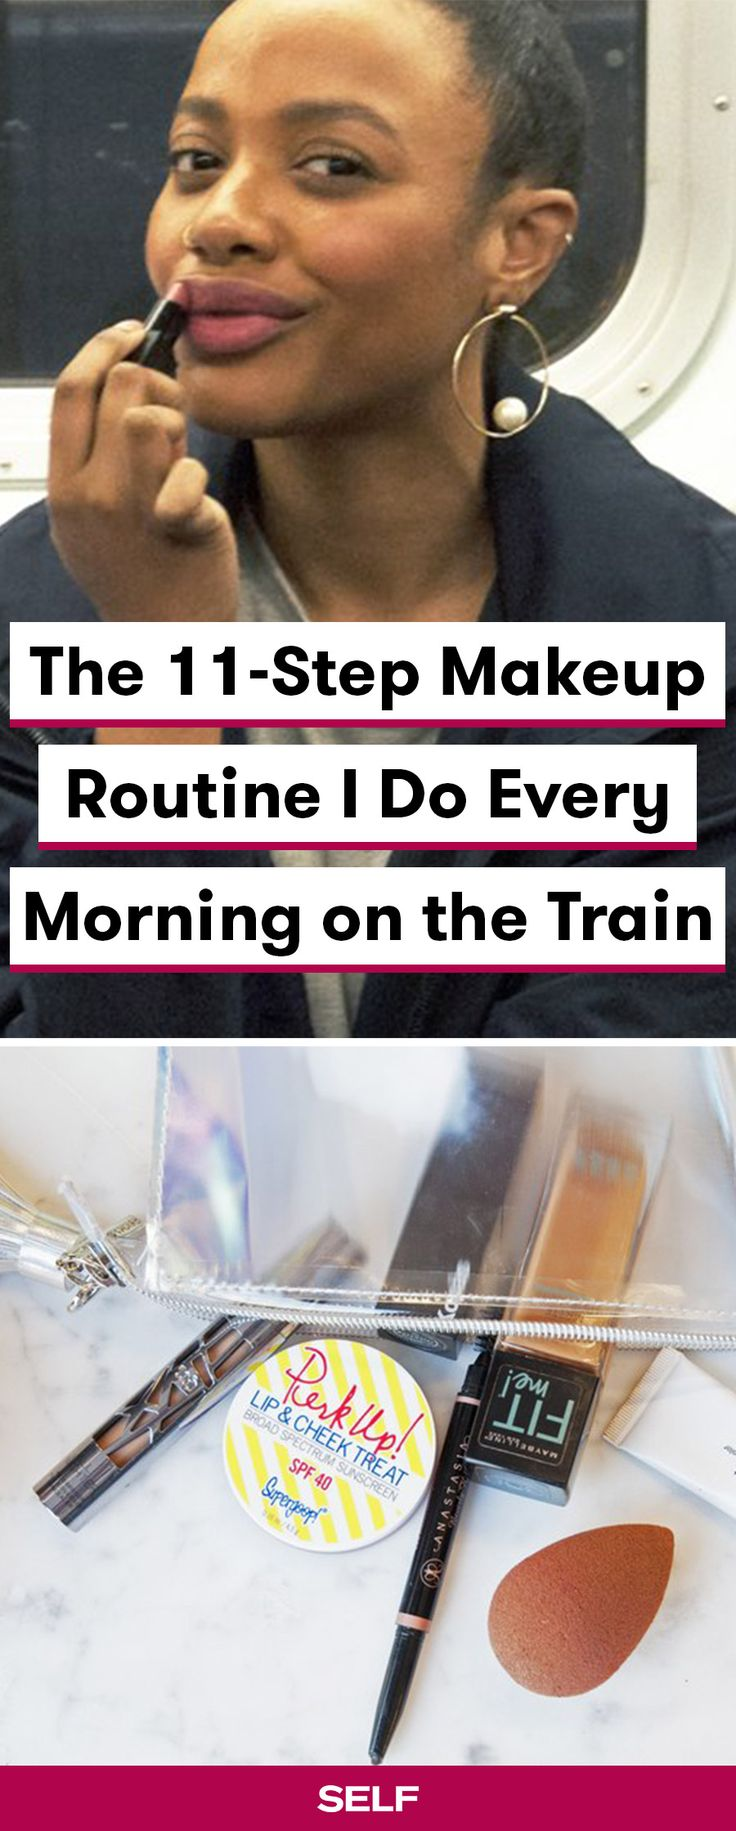 Looking for a fast makeup routine for mornings? Here are all 11 of our editor's essential steps, plus the products and tips that help her achieve a simple everyday makeup look. If she can do it in a moving train, you can do this tutorial at home—guaranteed!